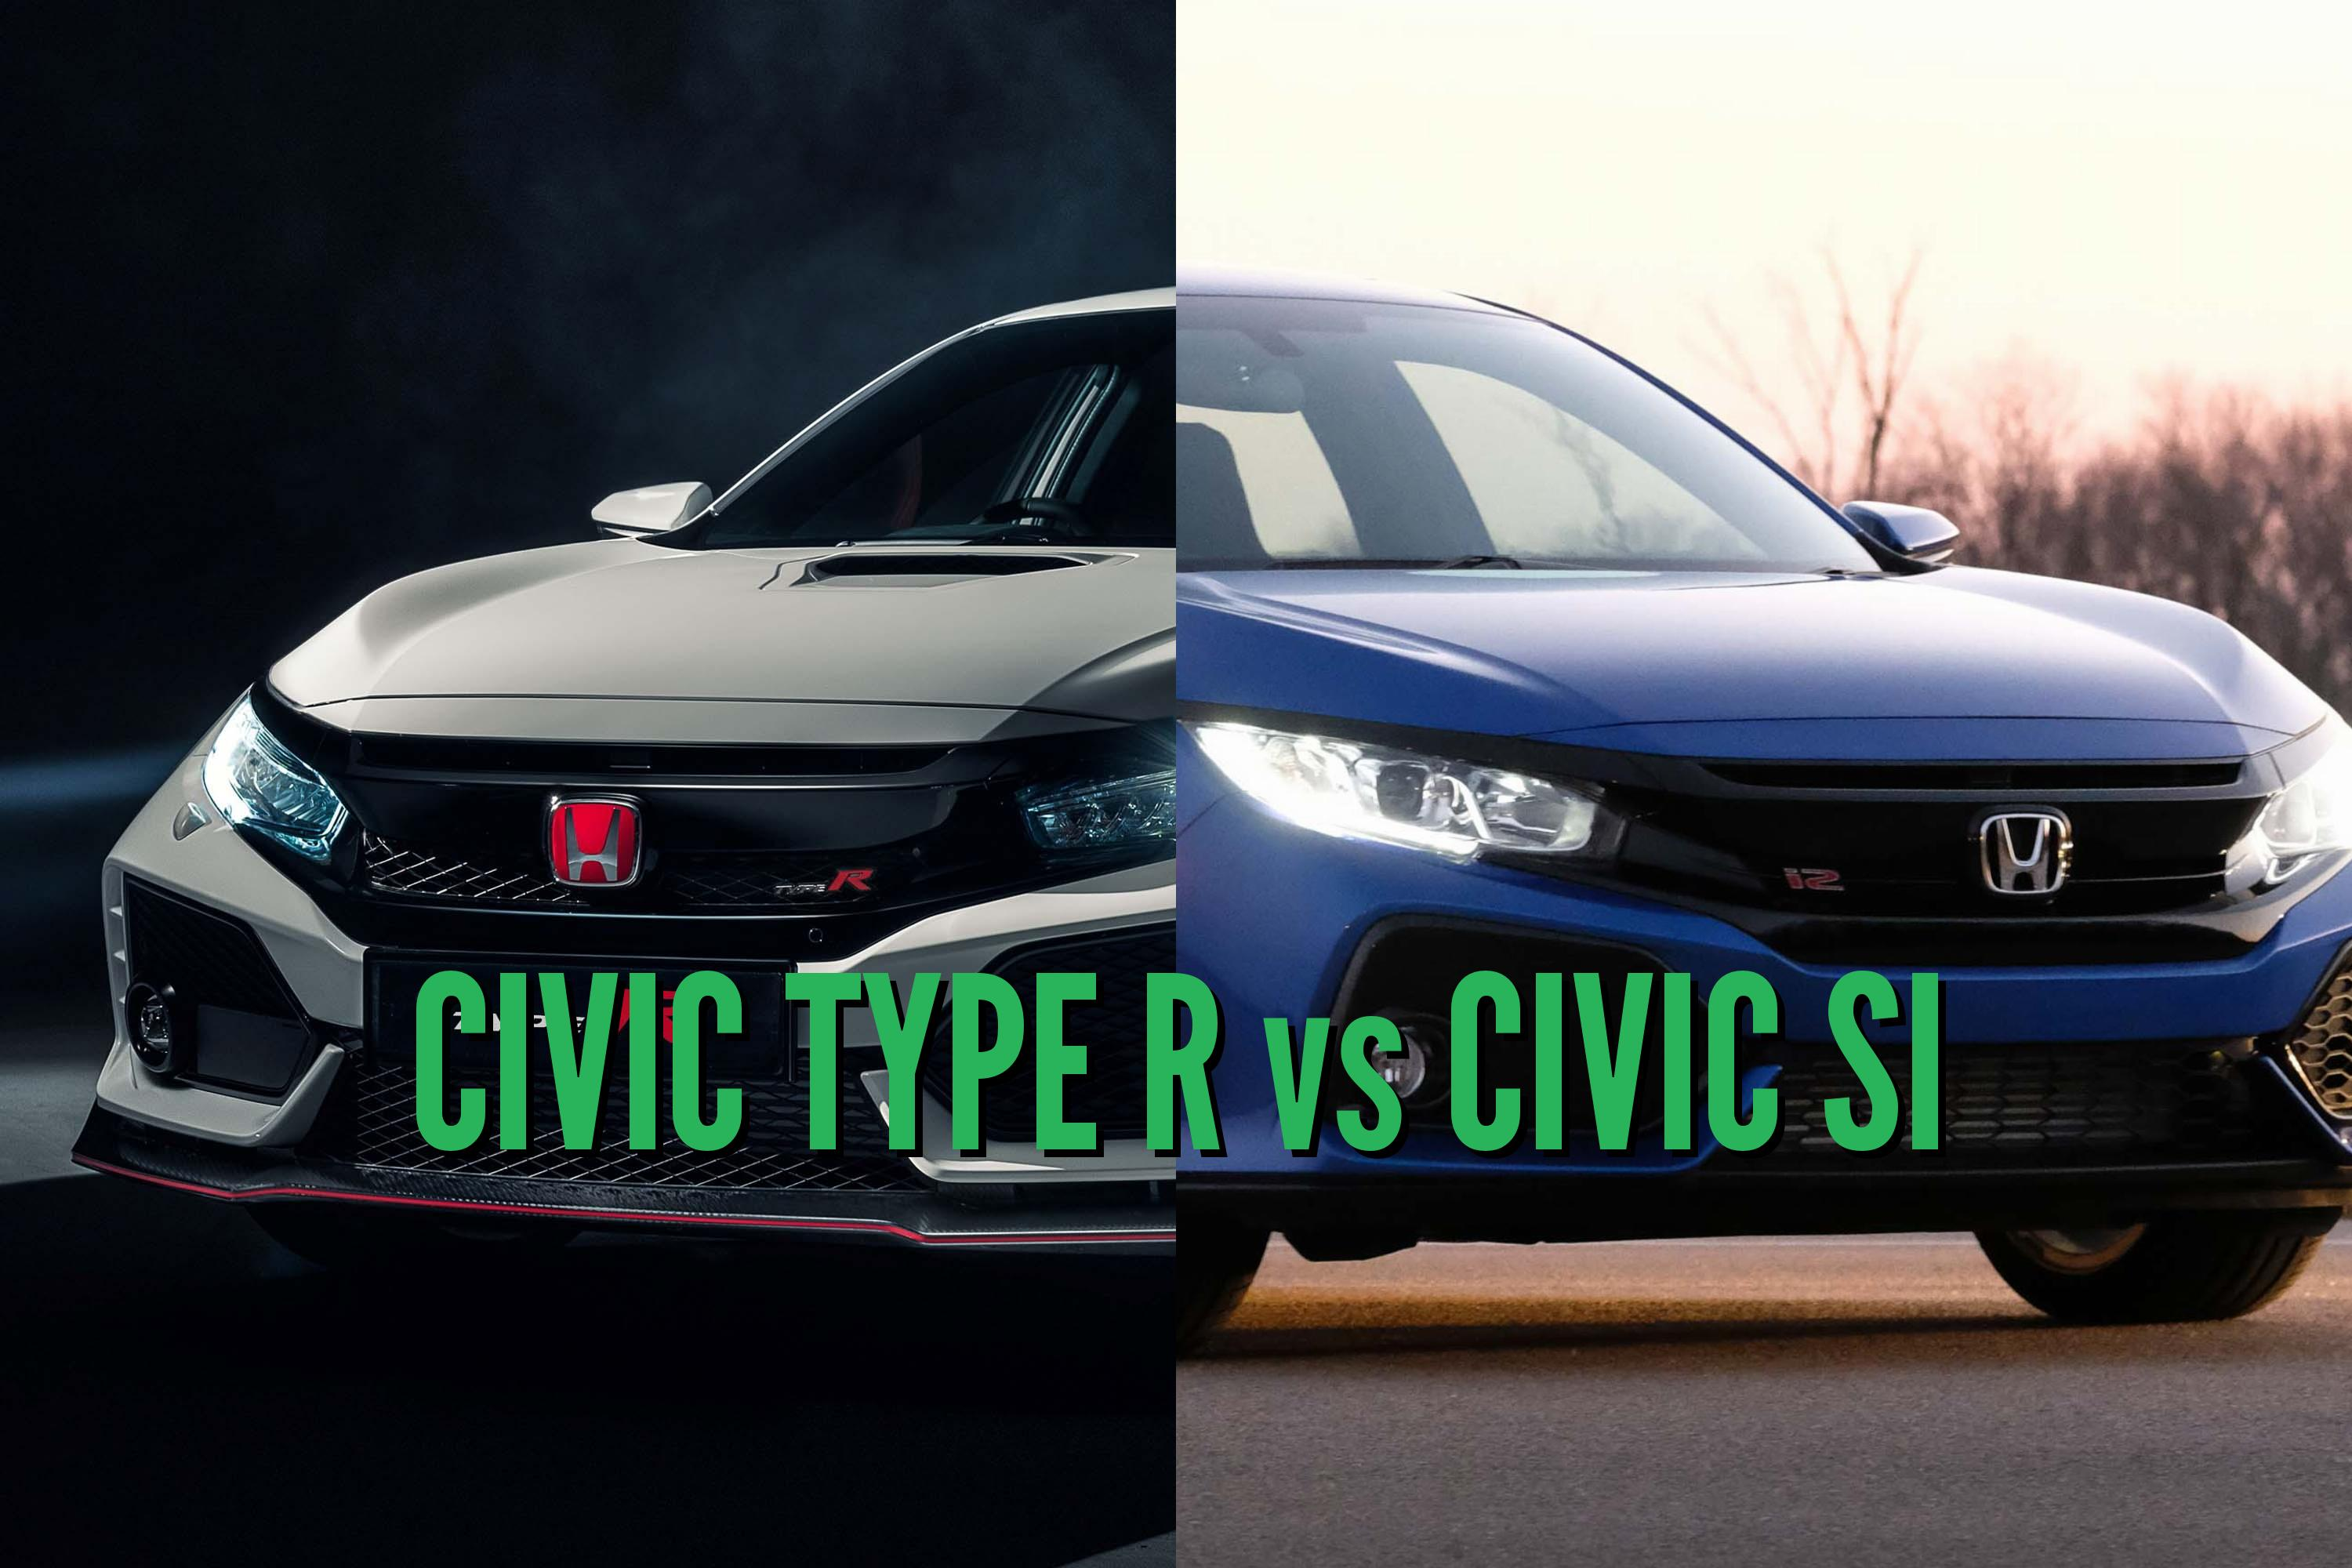 2018 honda civic type r vs si differences in side by side comparison between the axles. Black Bedroom Furniture Sets. Home Design Ideas